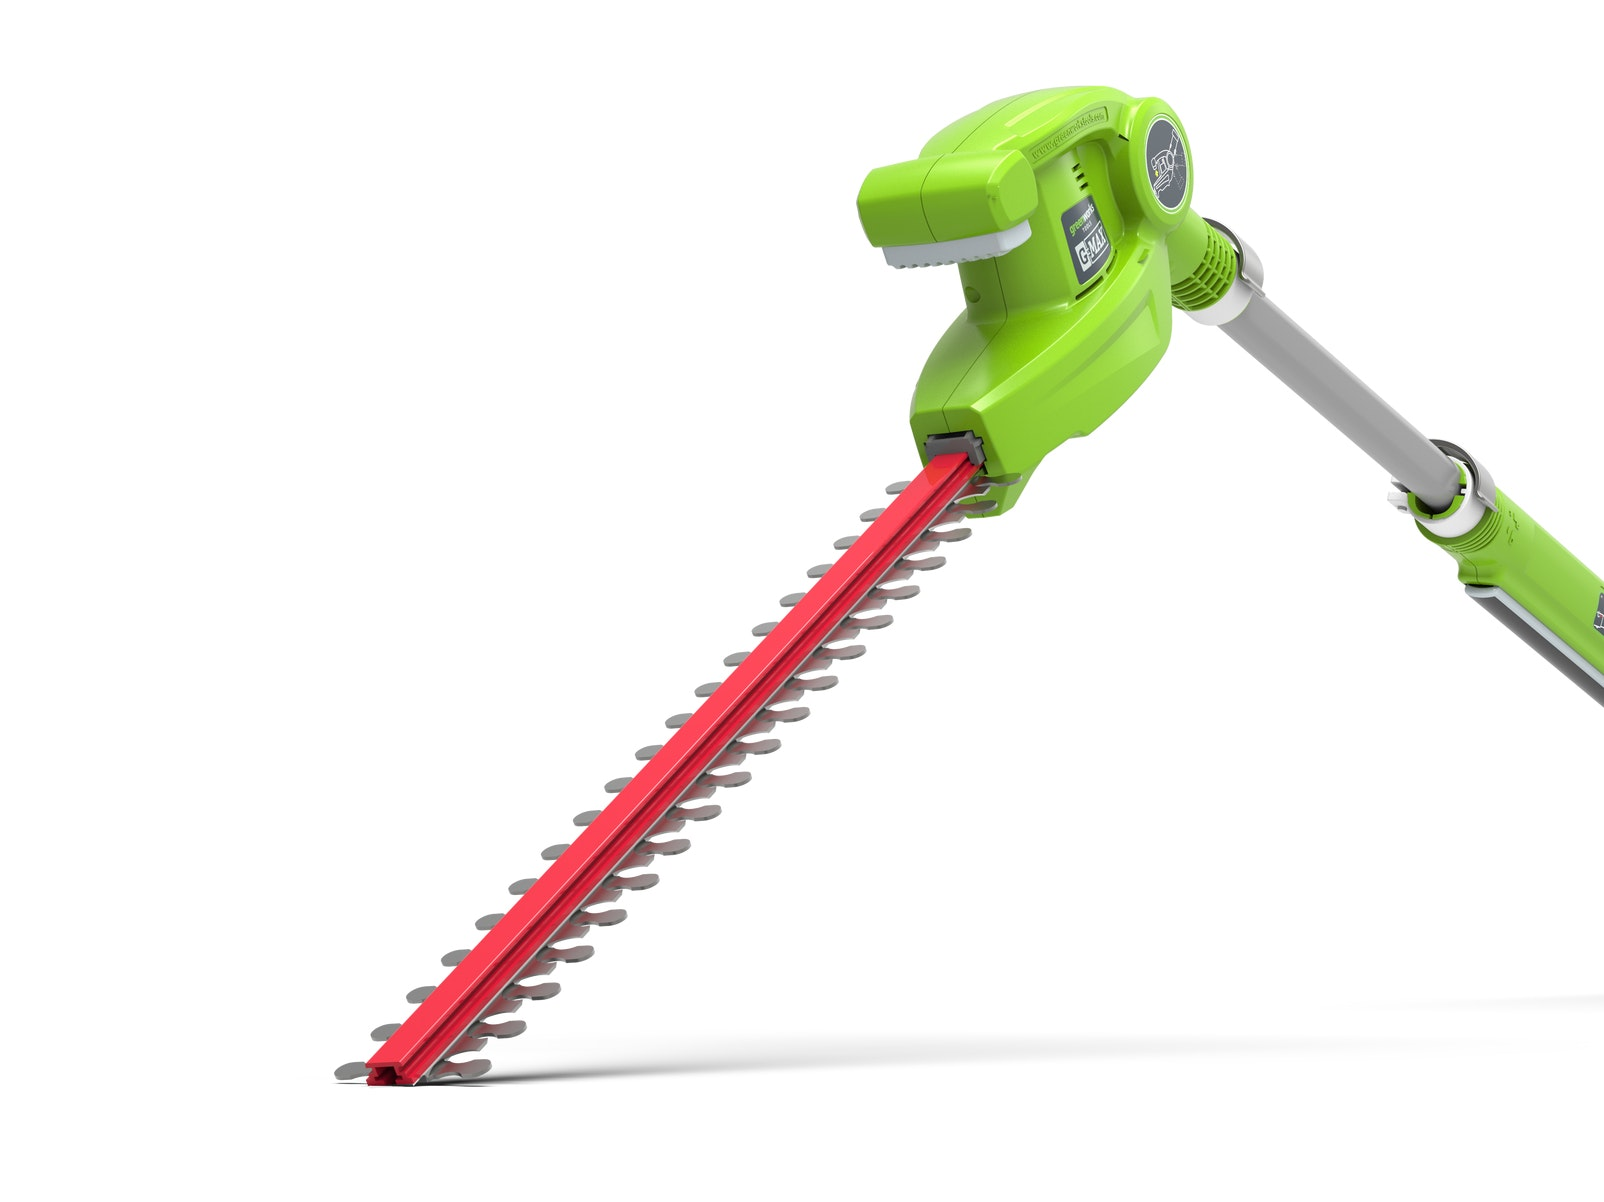 GreenWorks Long Reach Trimmer G-MAX 40V Replacement Blade